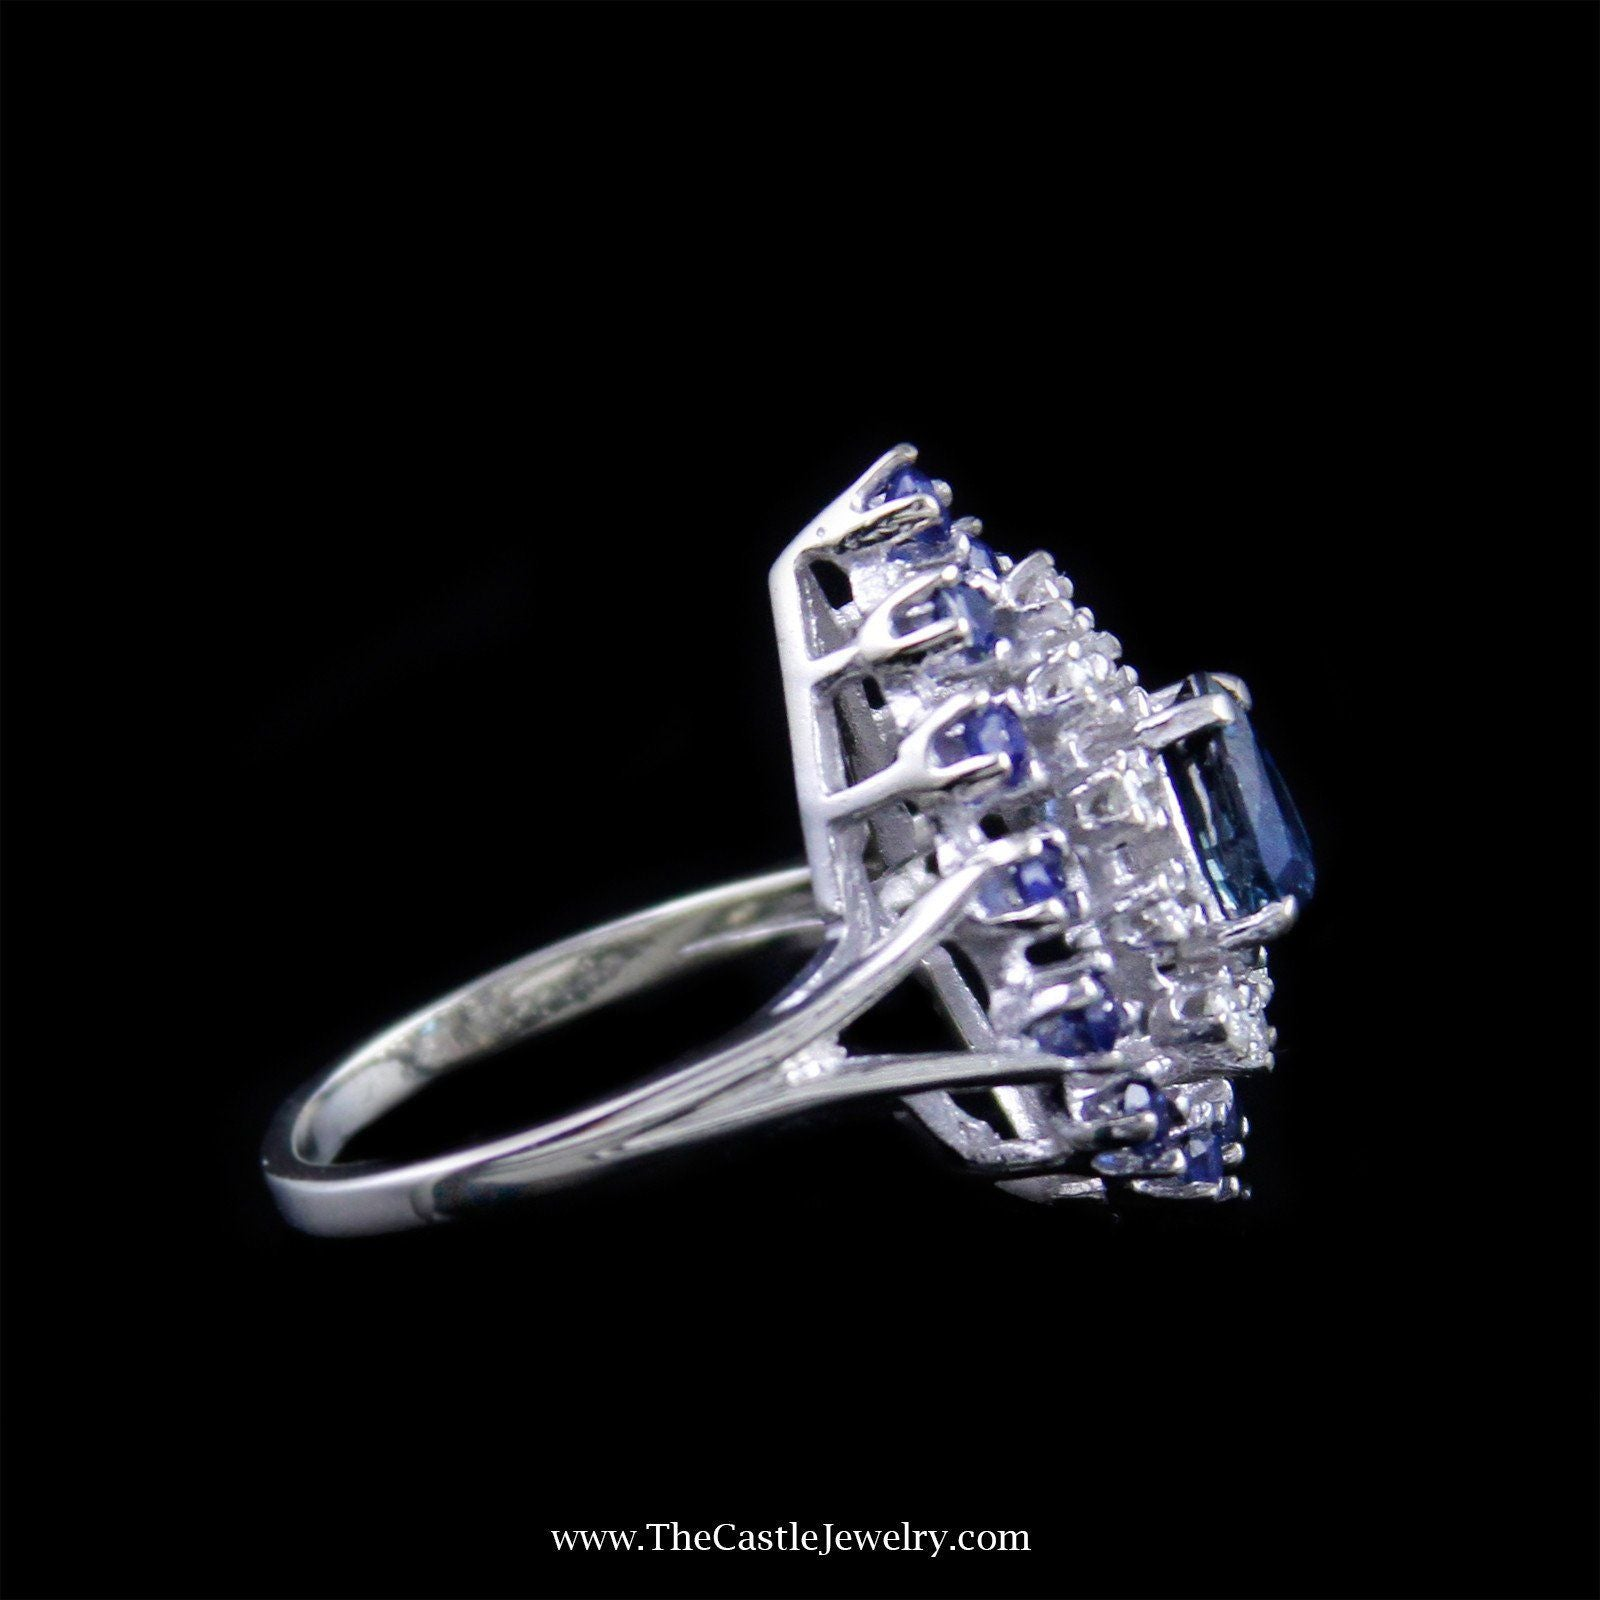 Pear Shaped Sapphire and Diamond Cocktail Ring in 14K White Gold-2